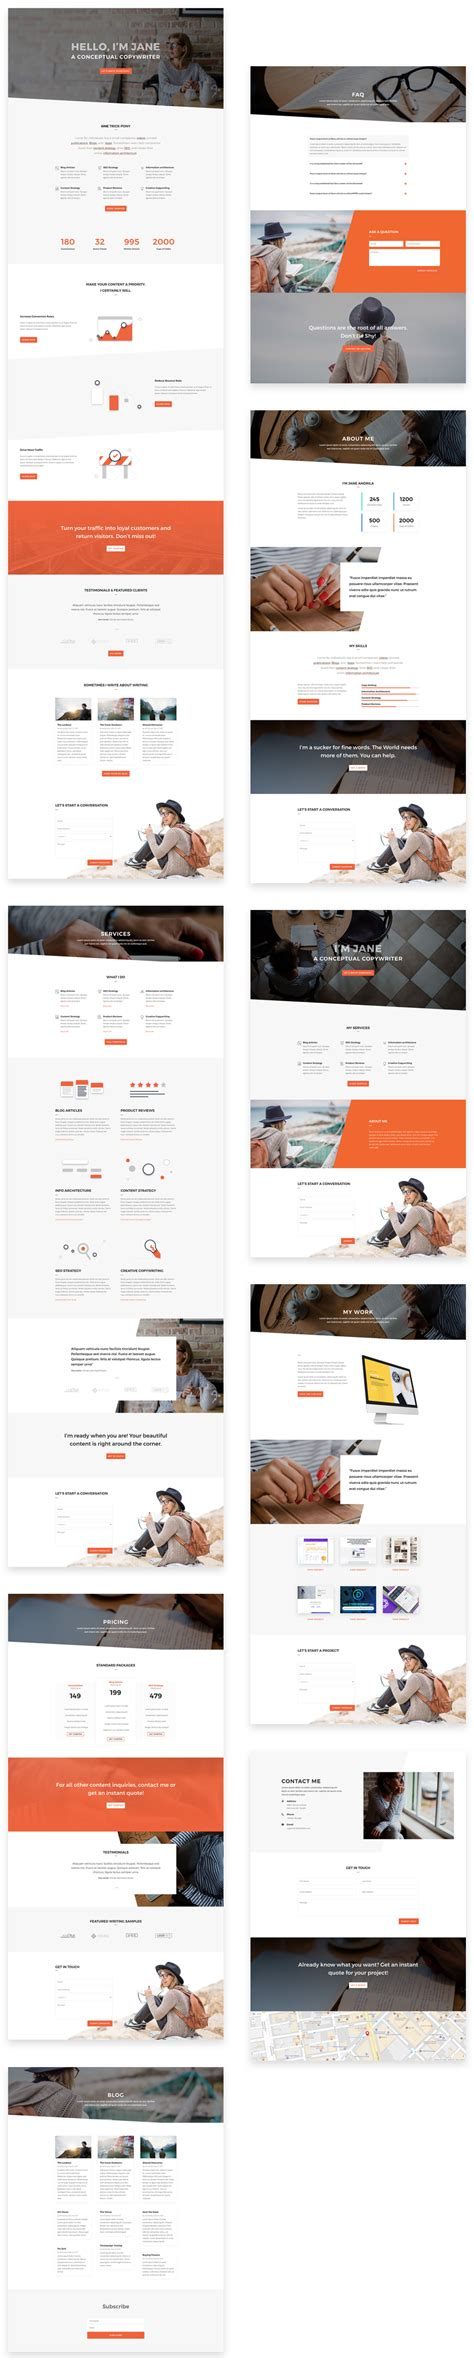 download layout divi download a free appealing copywriter layout pack for